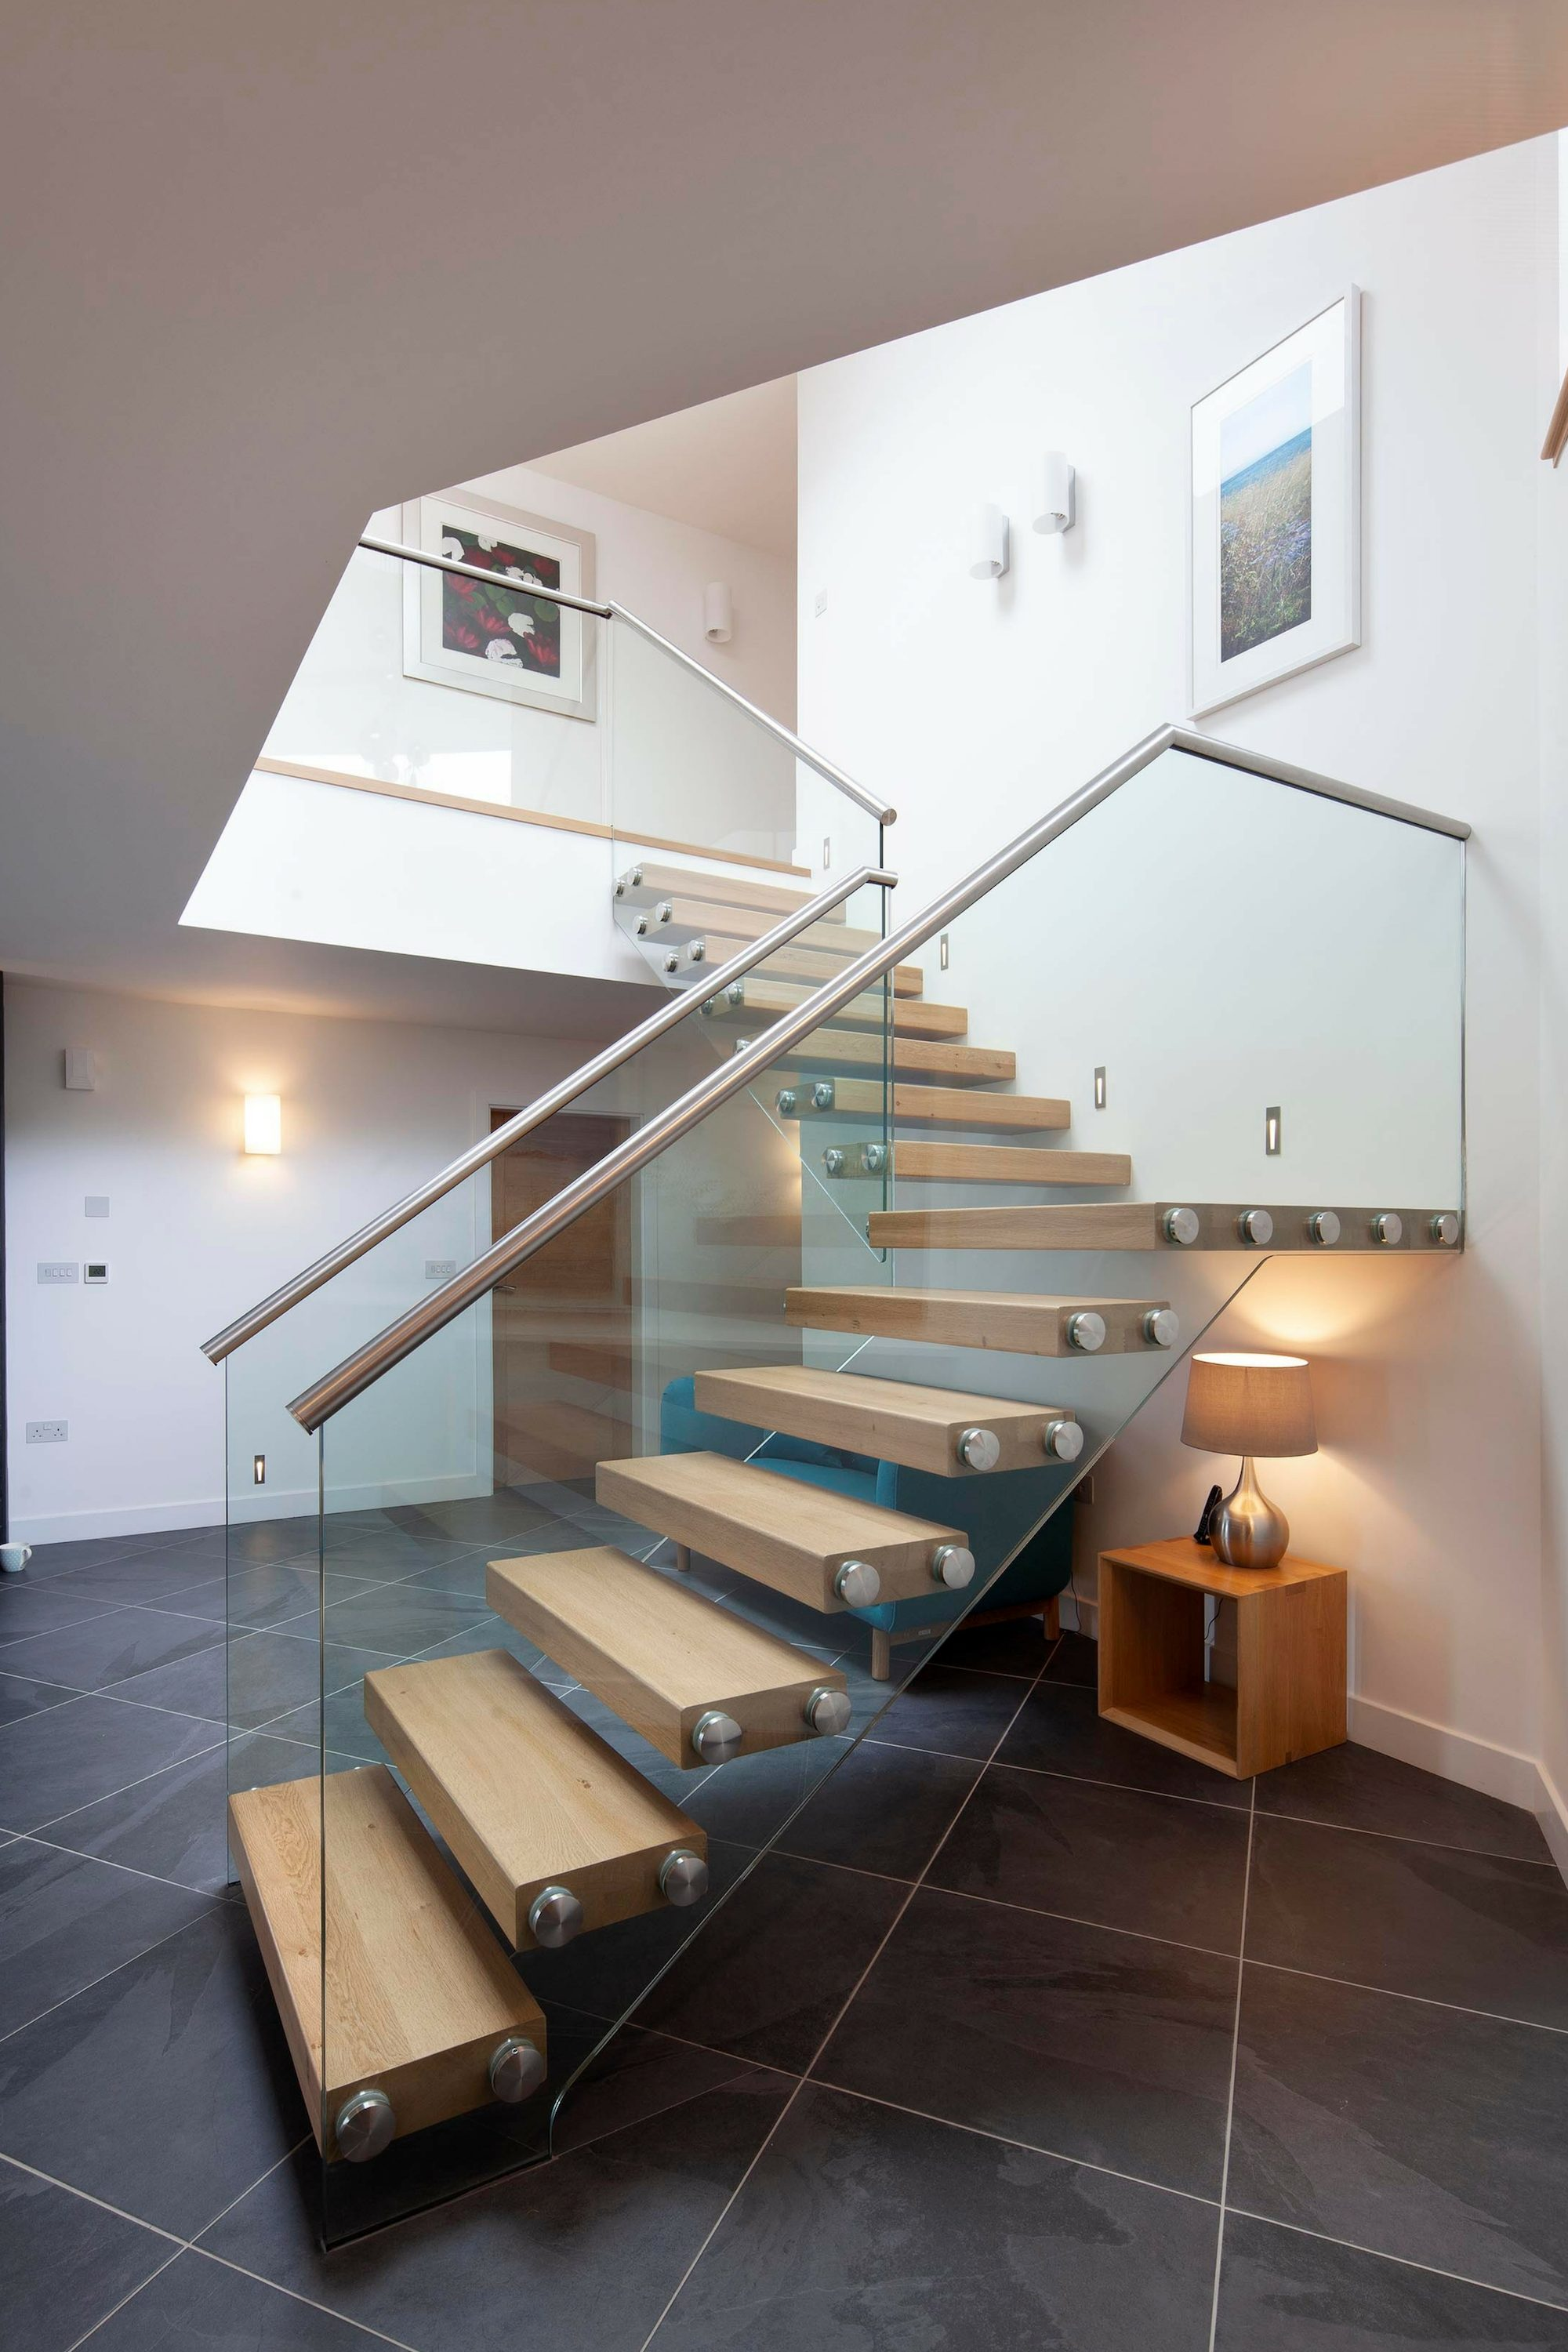 Cantilever staircase in home